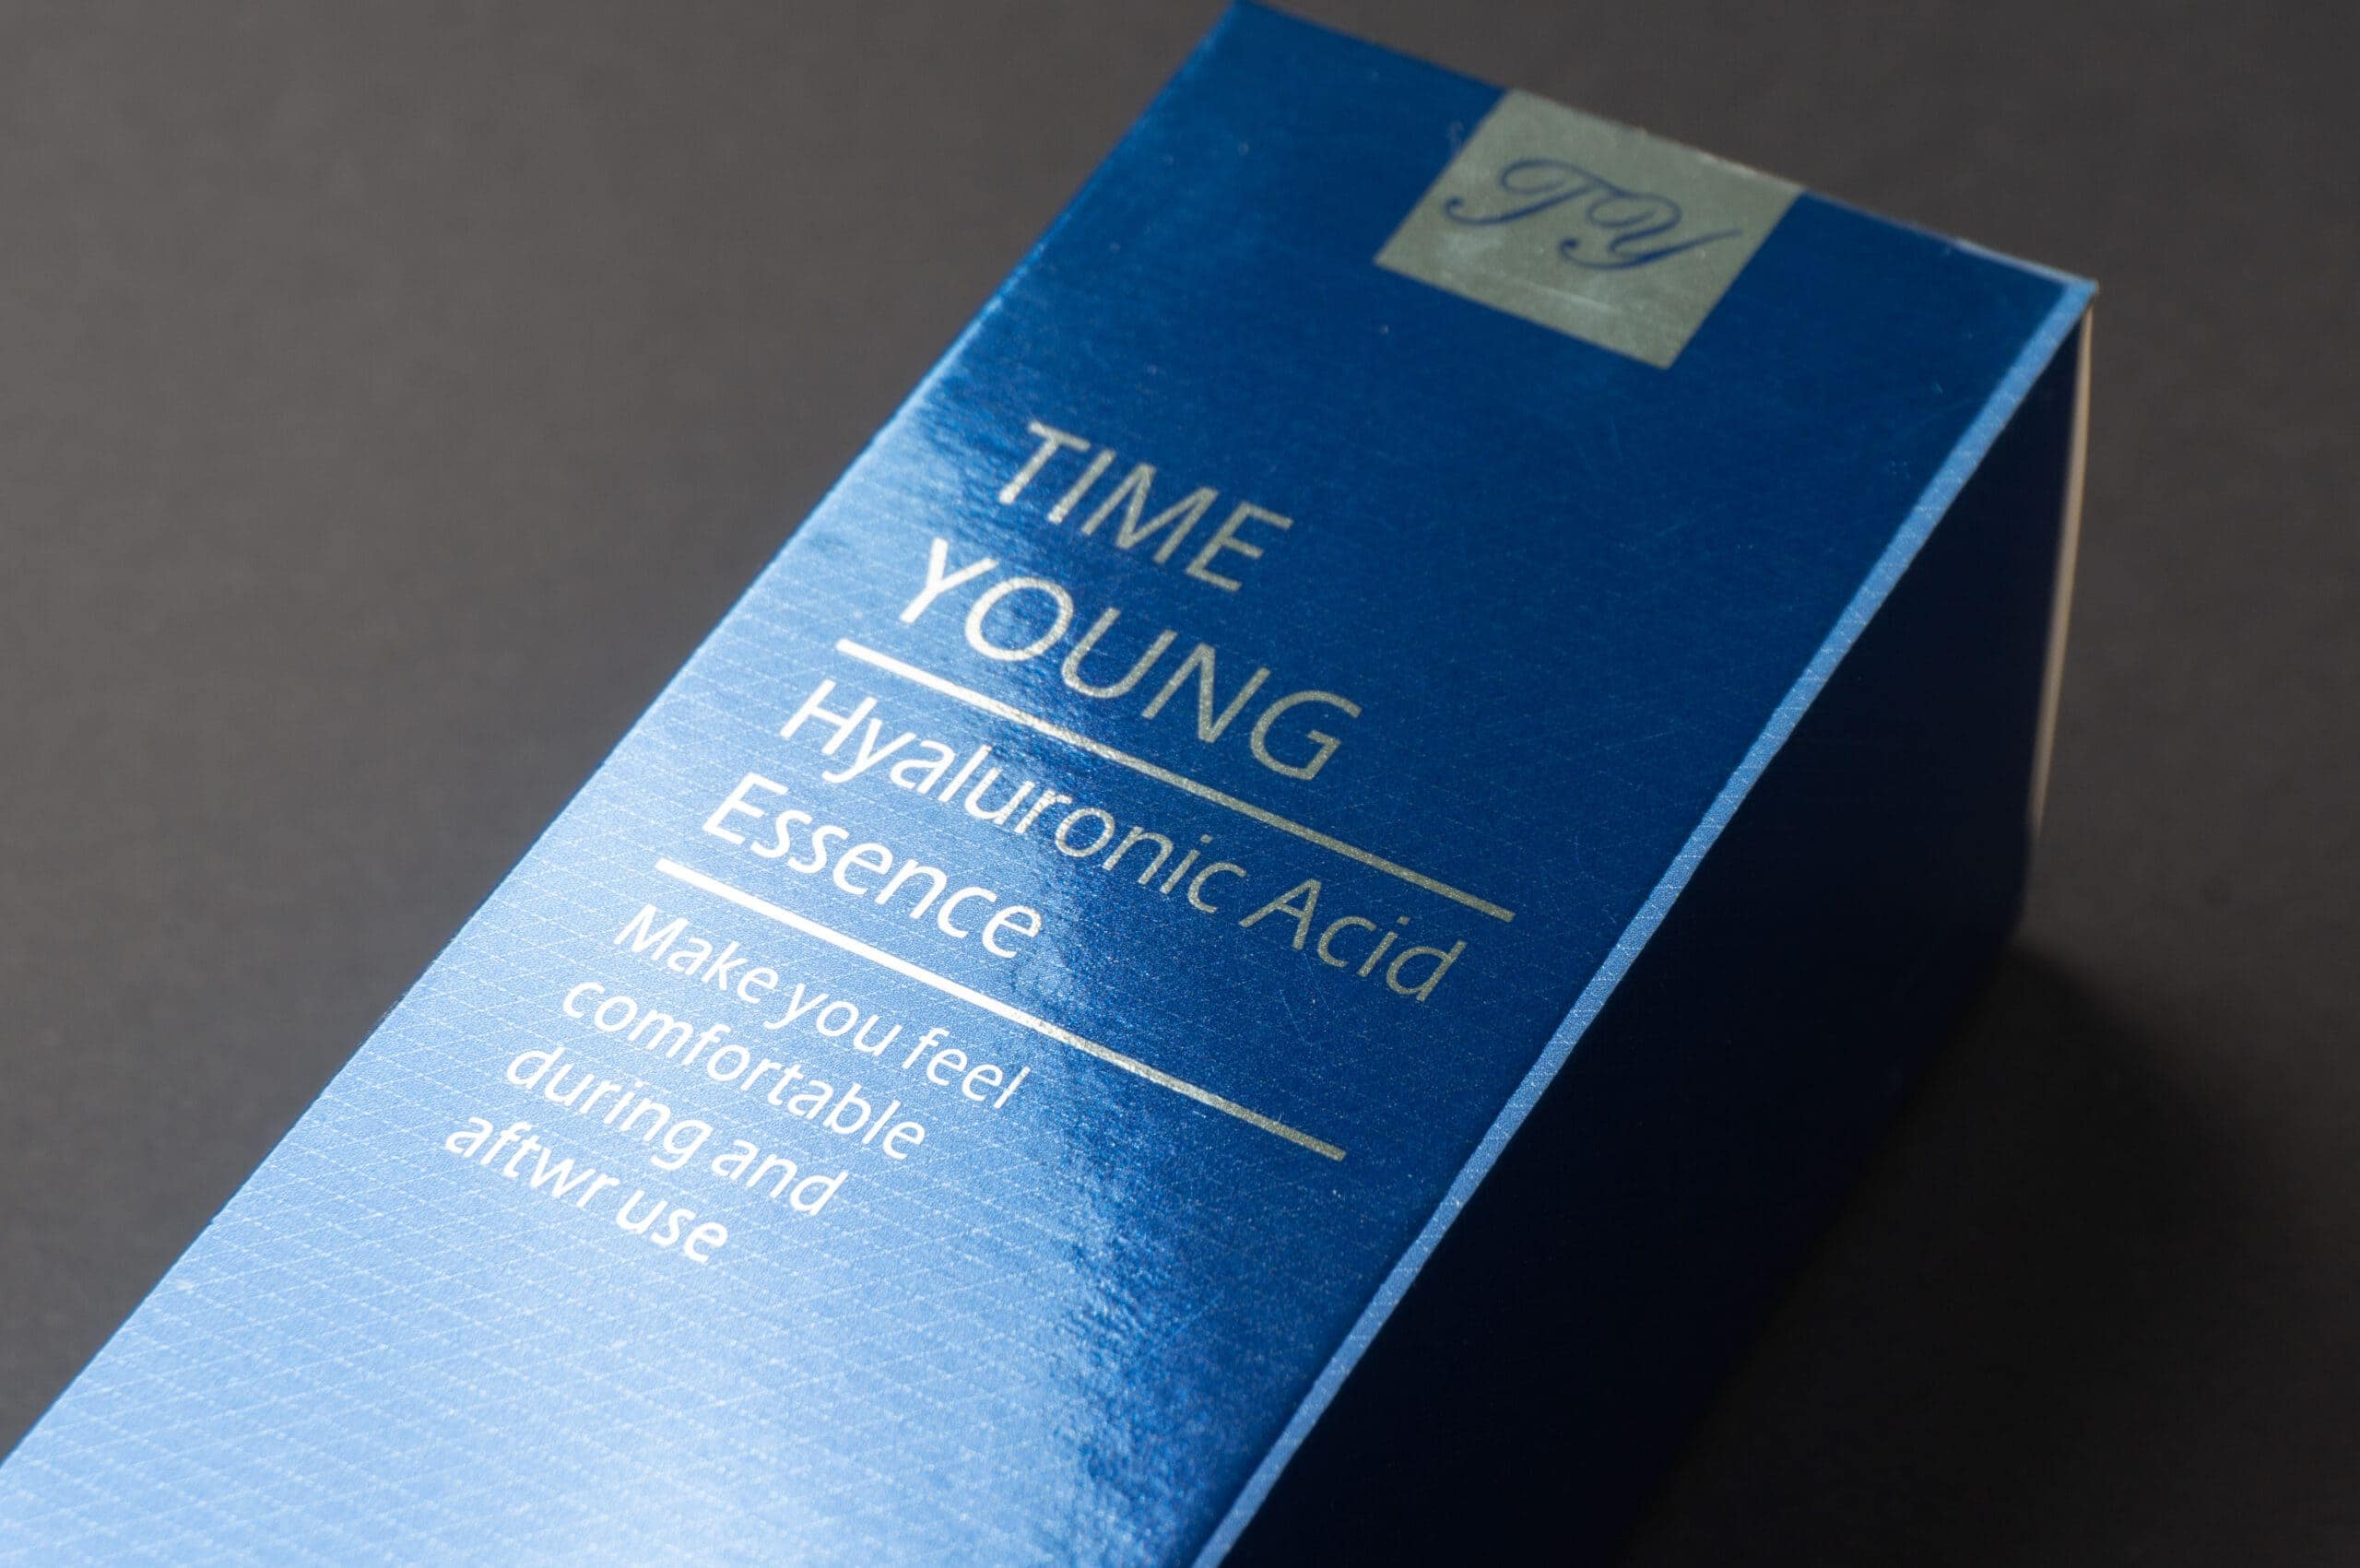 TIME YOUNG